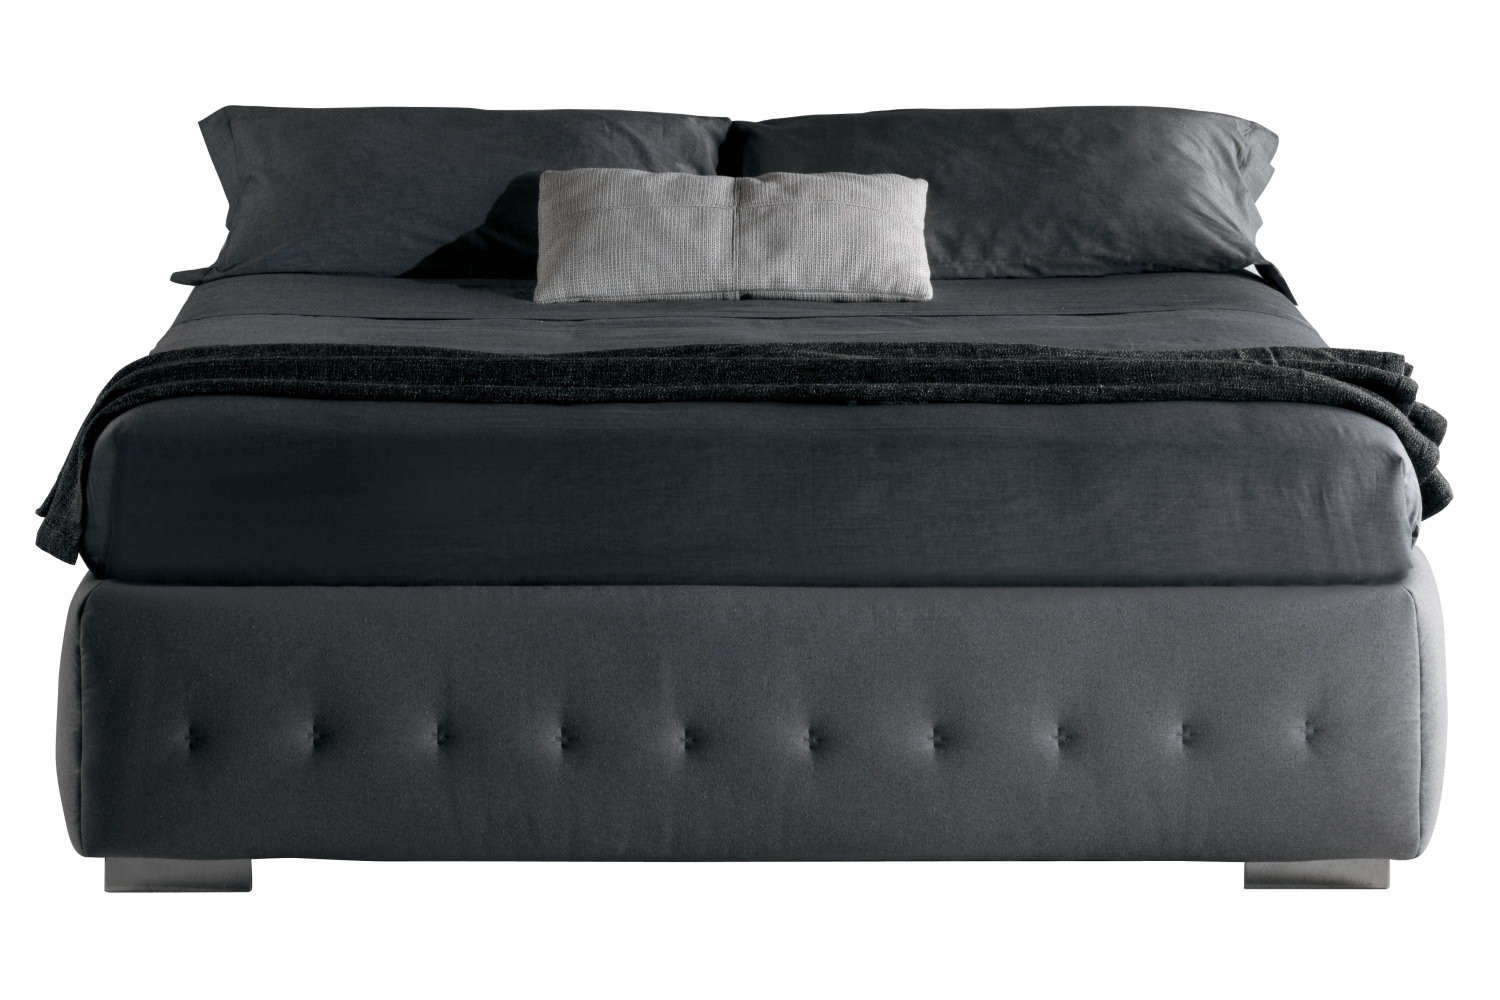 letto sommier imbottito raja. Black Bedroom Furniture Sets. Home Design Ideas